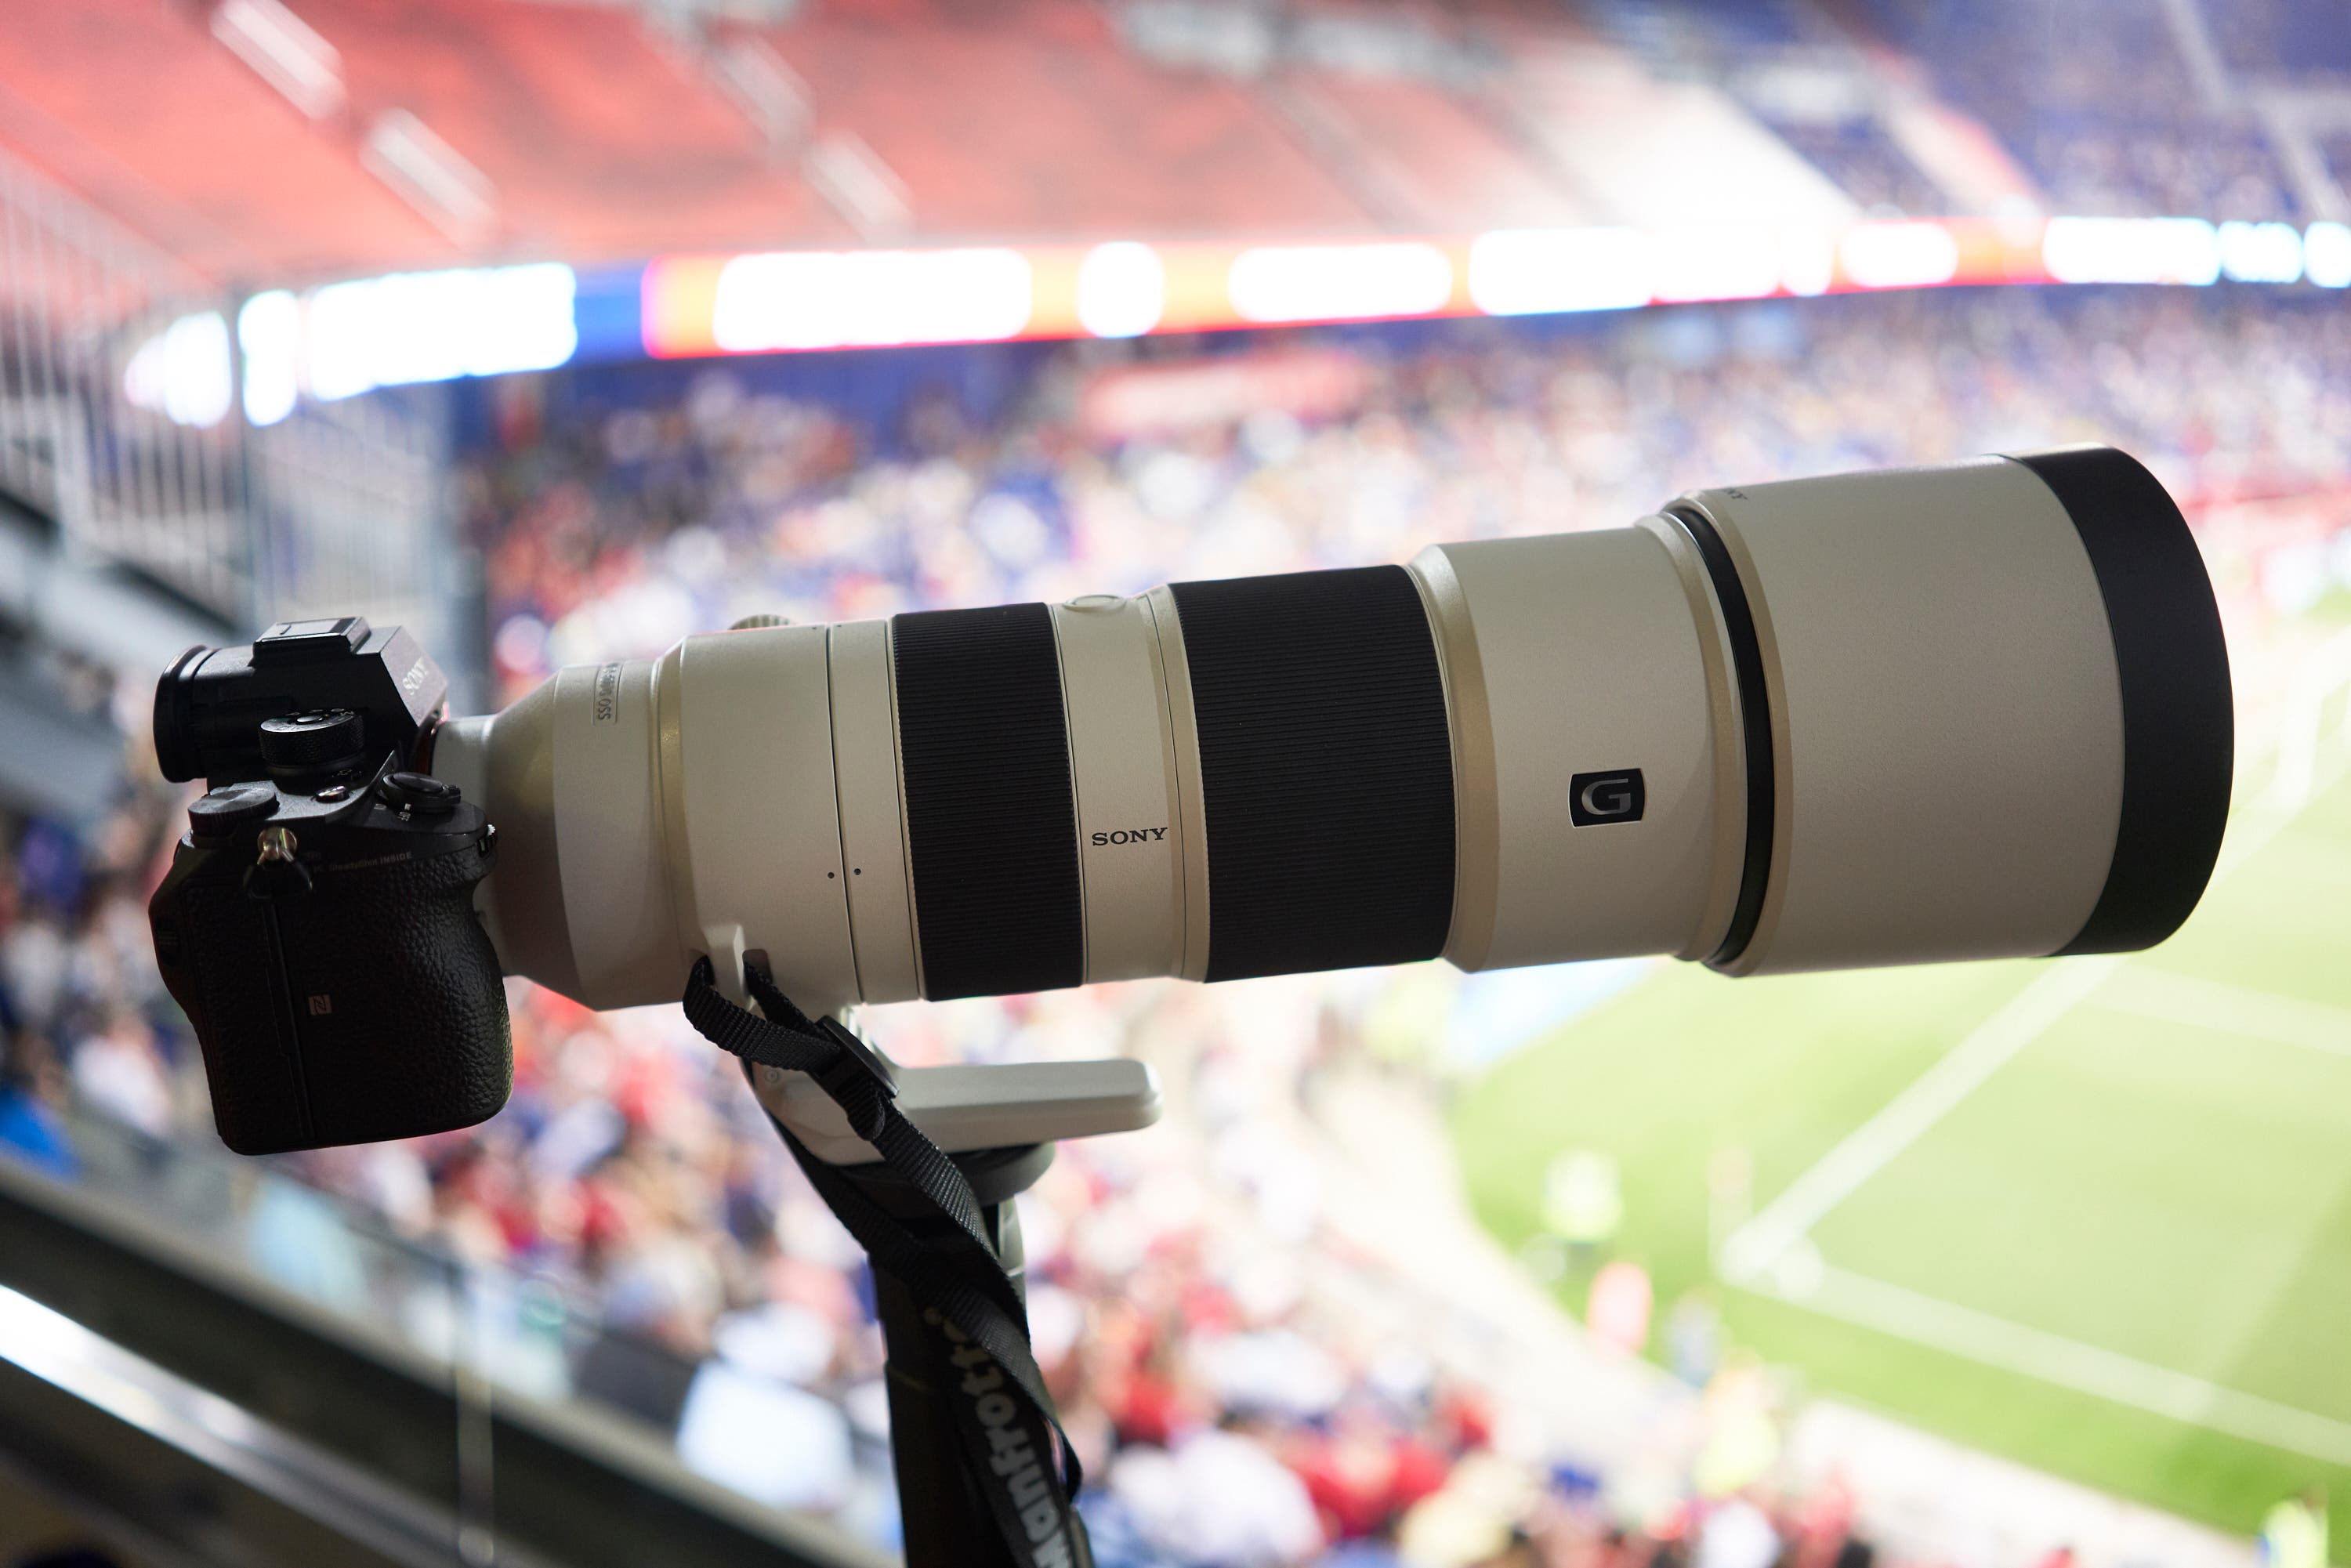 First Impressions: Sony 200-600mm F5.6-6.3 G OSS (FE Lens)